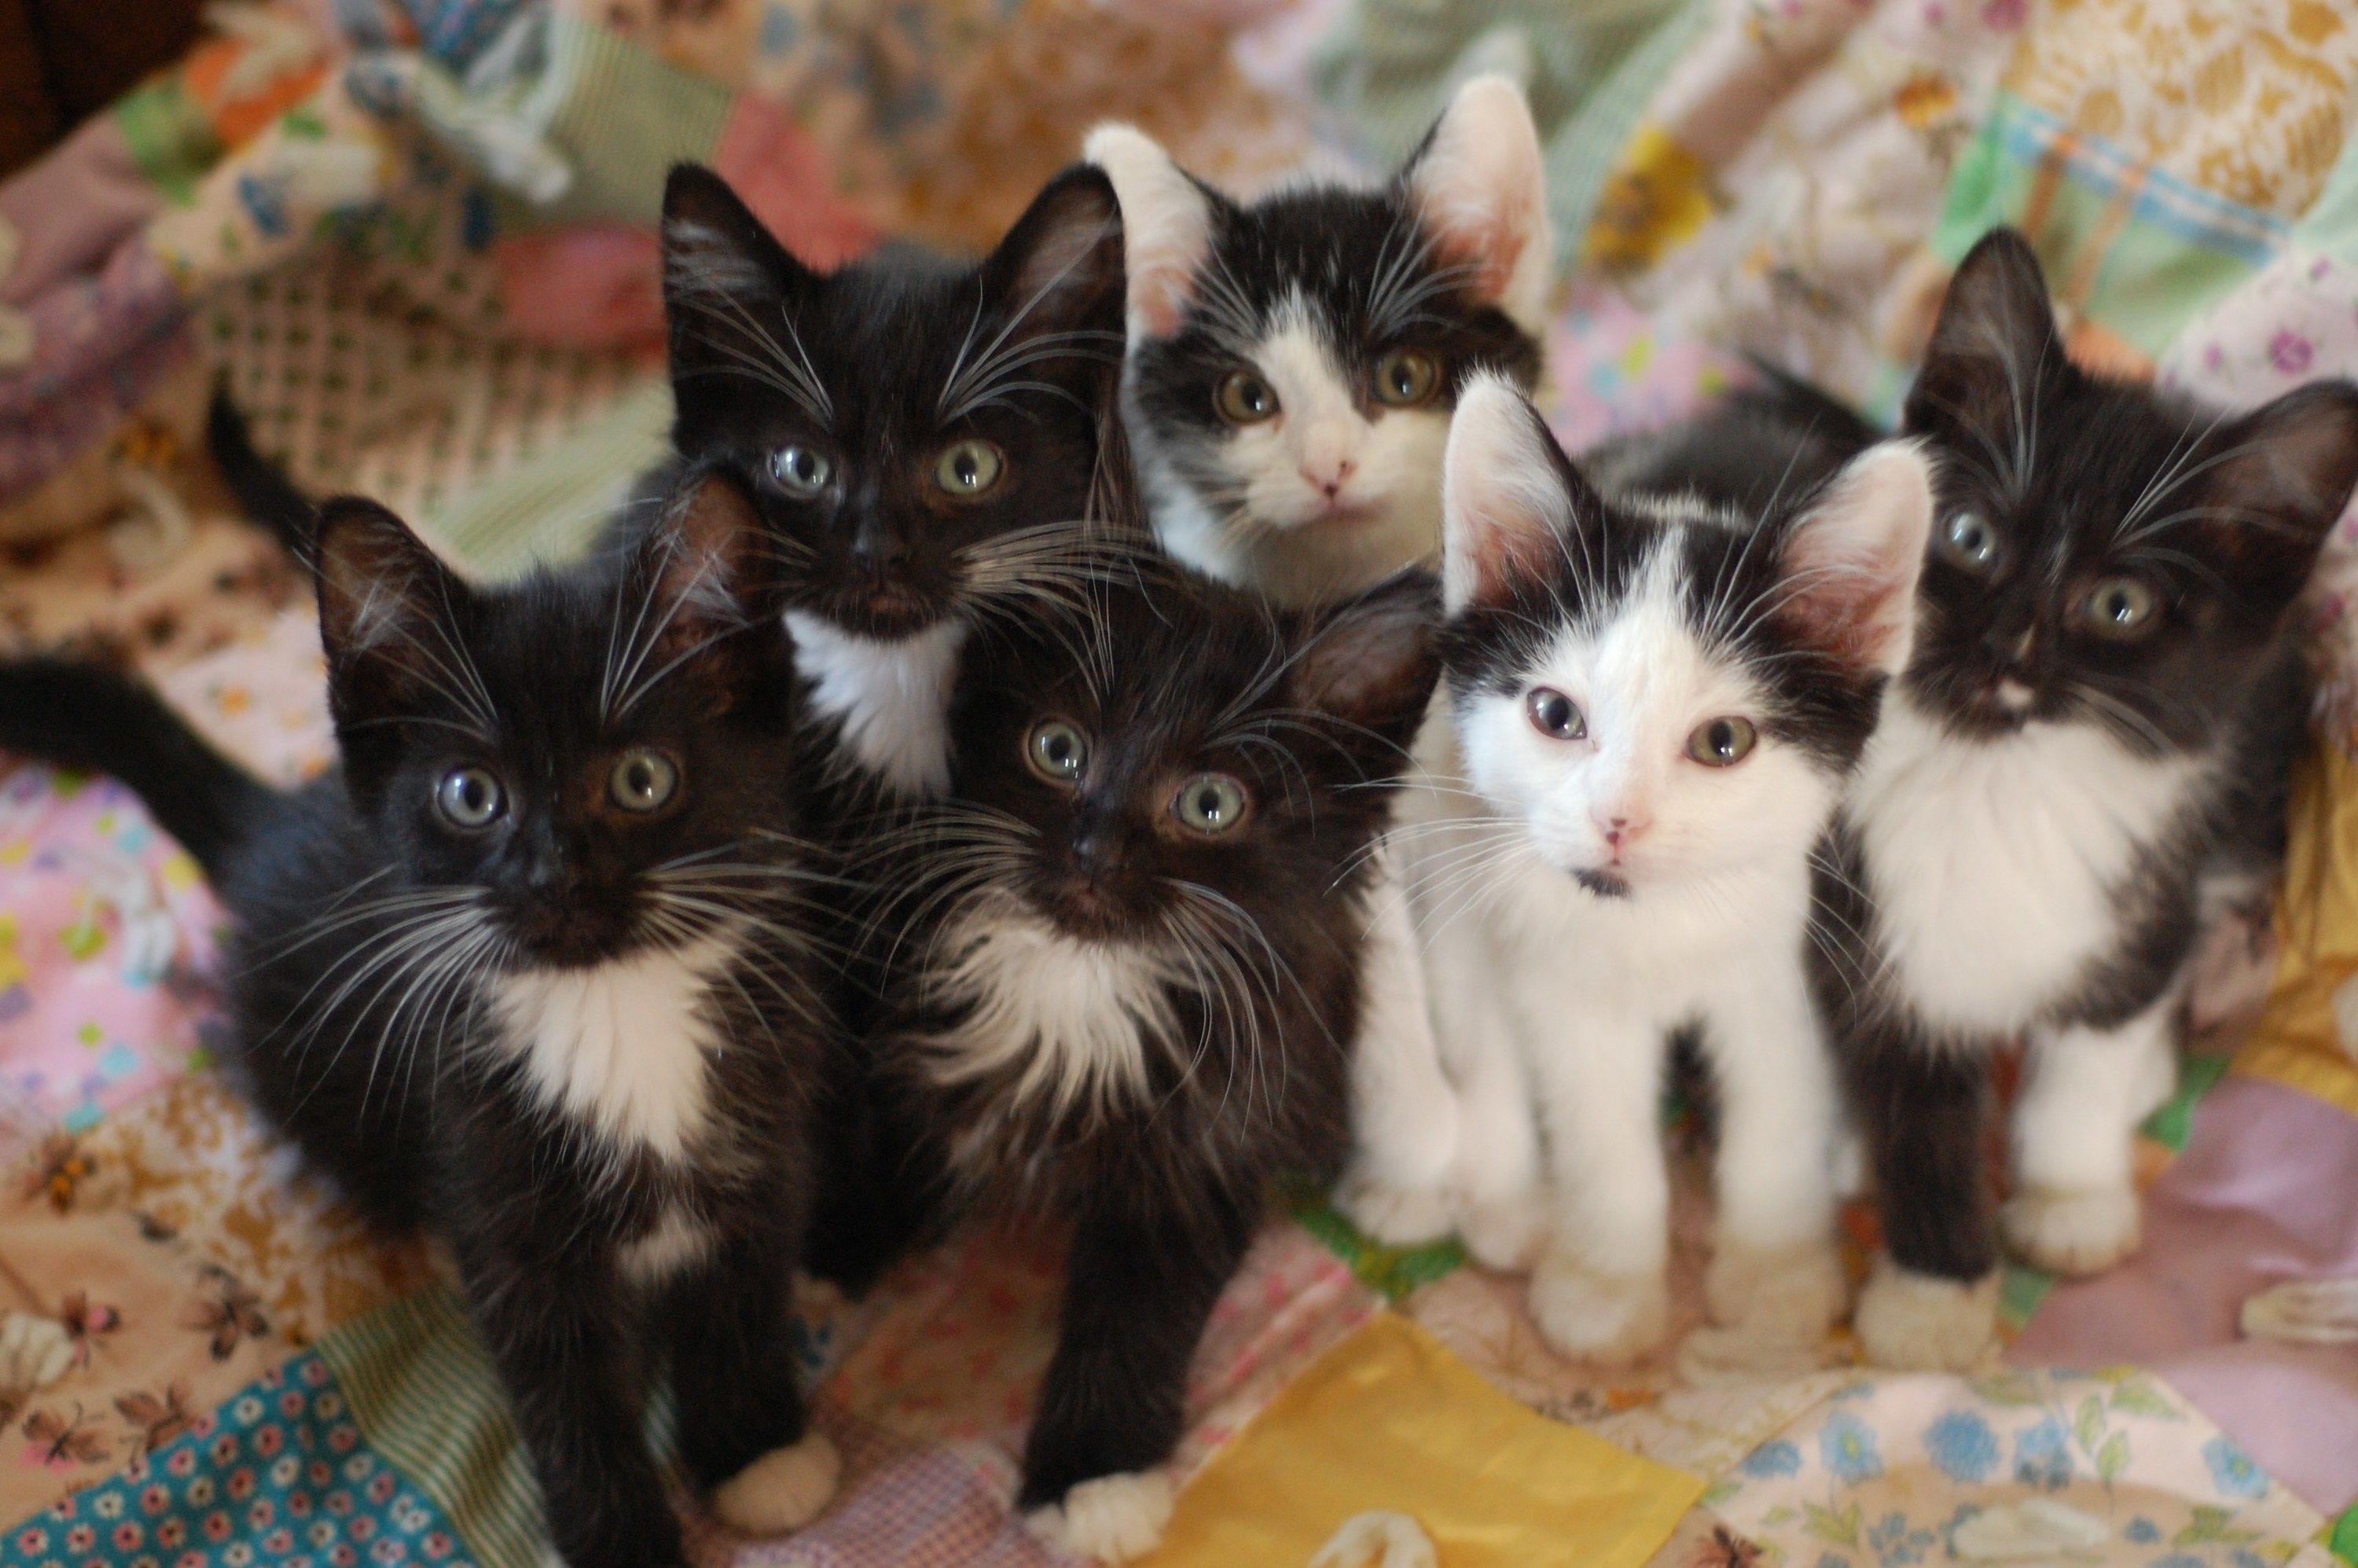 Six kittens looking up at the camera